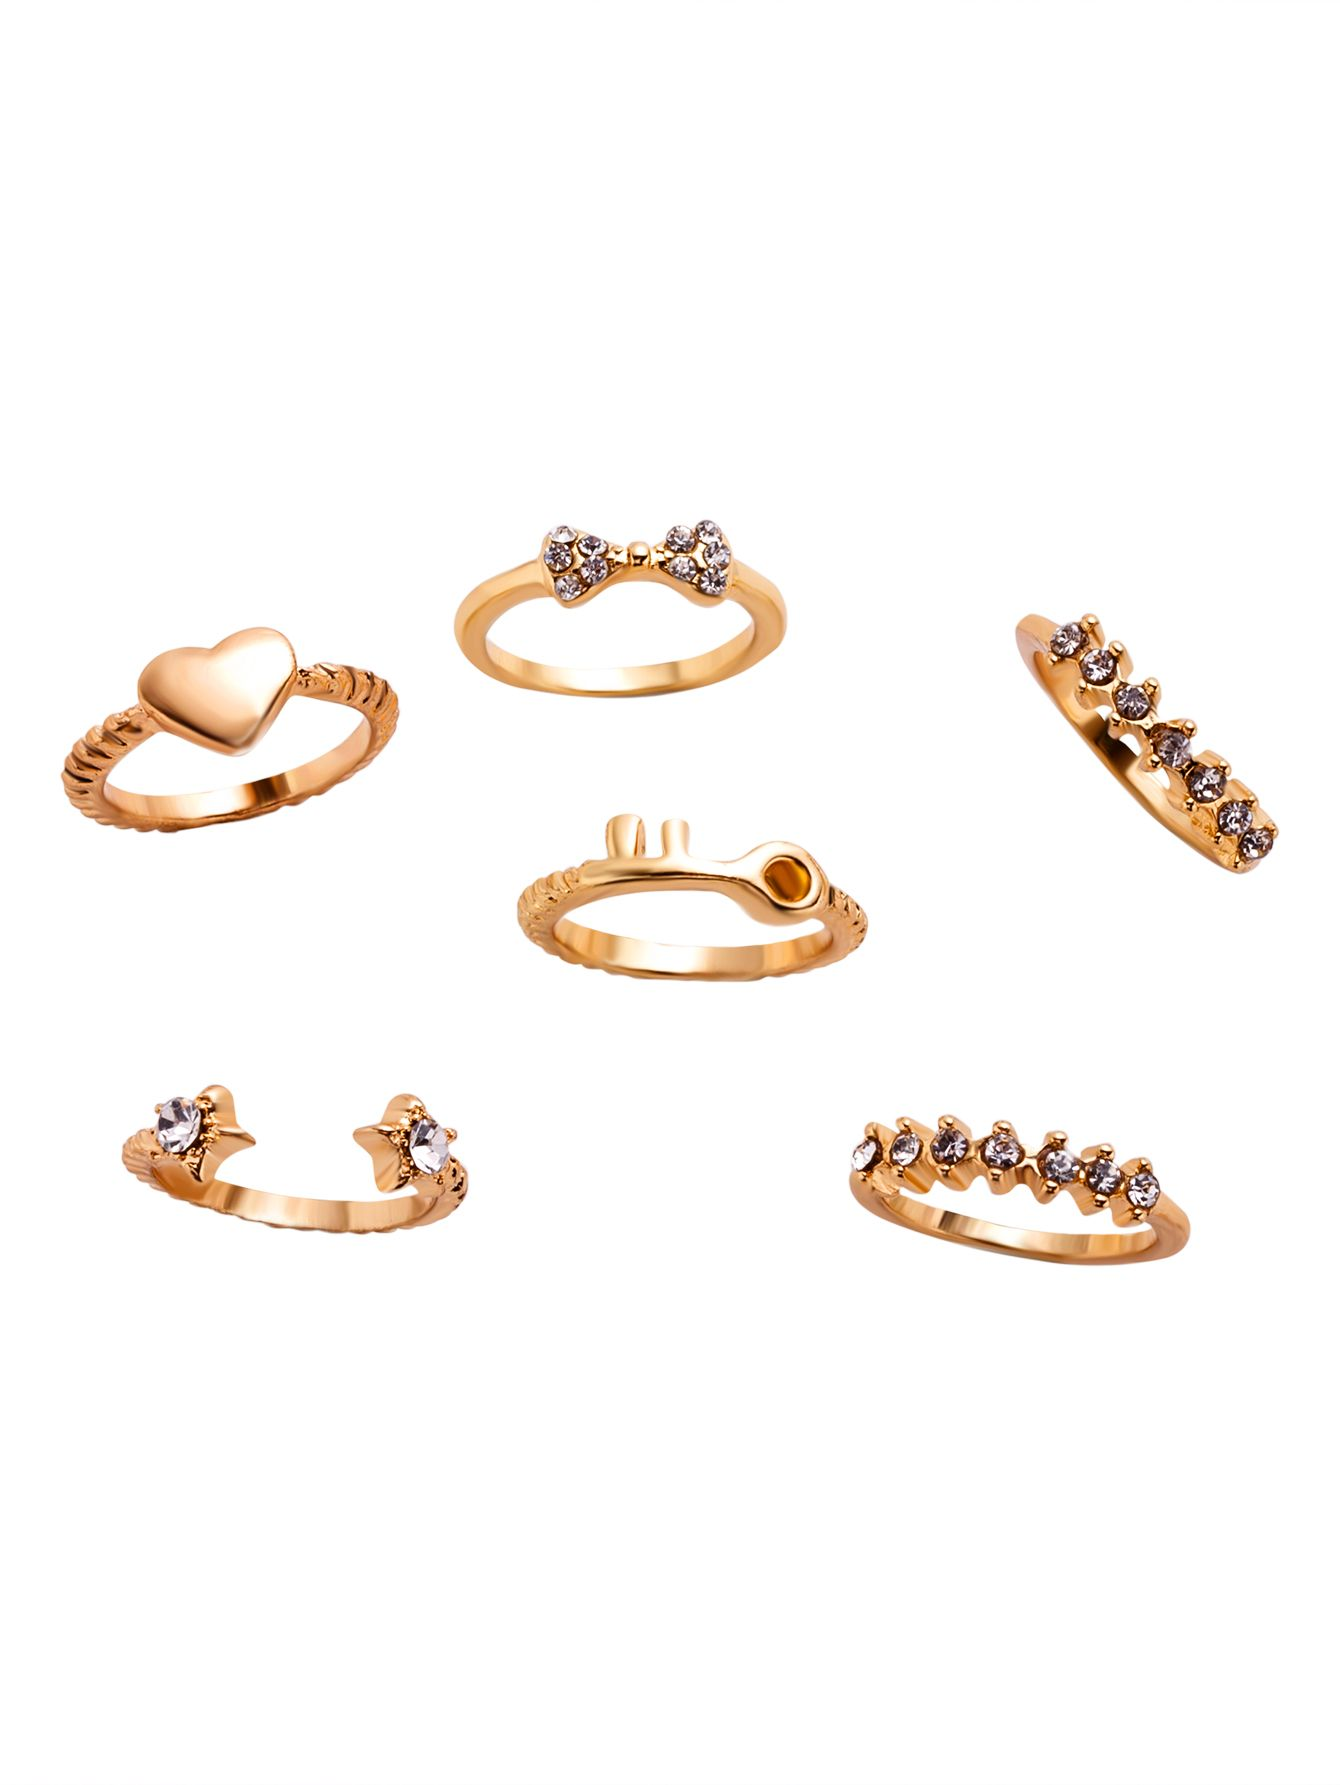 6PCS Gold Plated Rhinestone Multi Shape Ring Set — 0.00 € -------color: Gold size: None